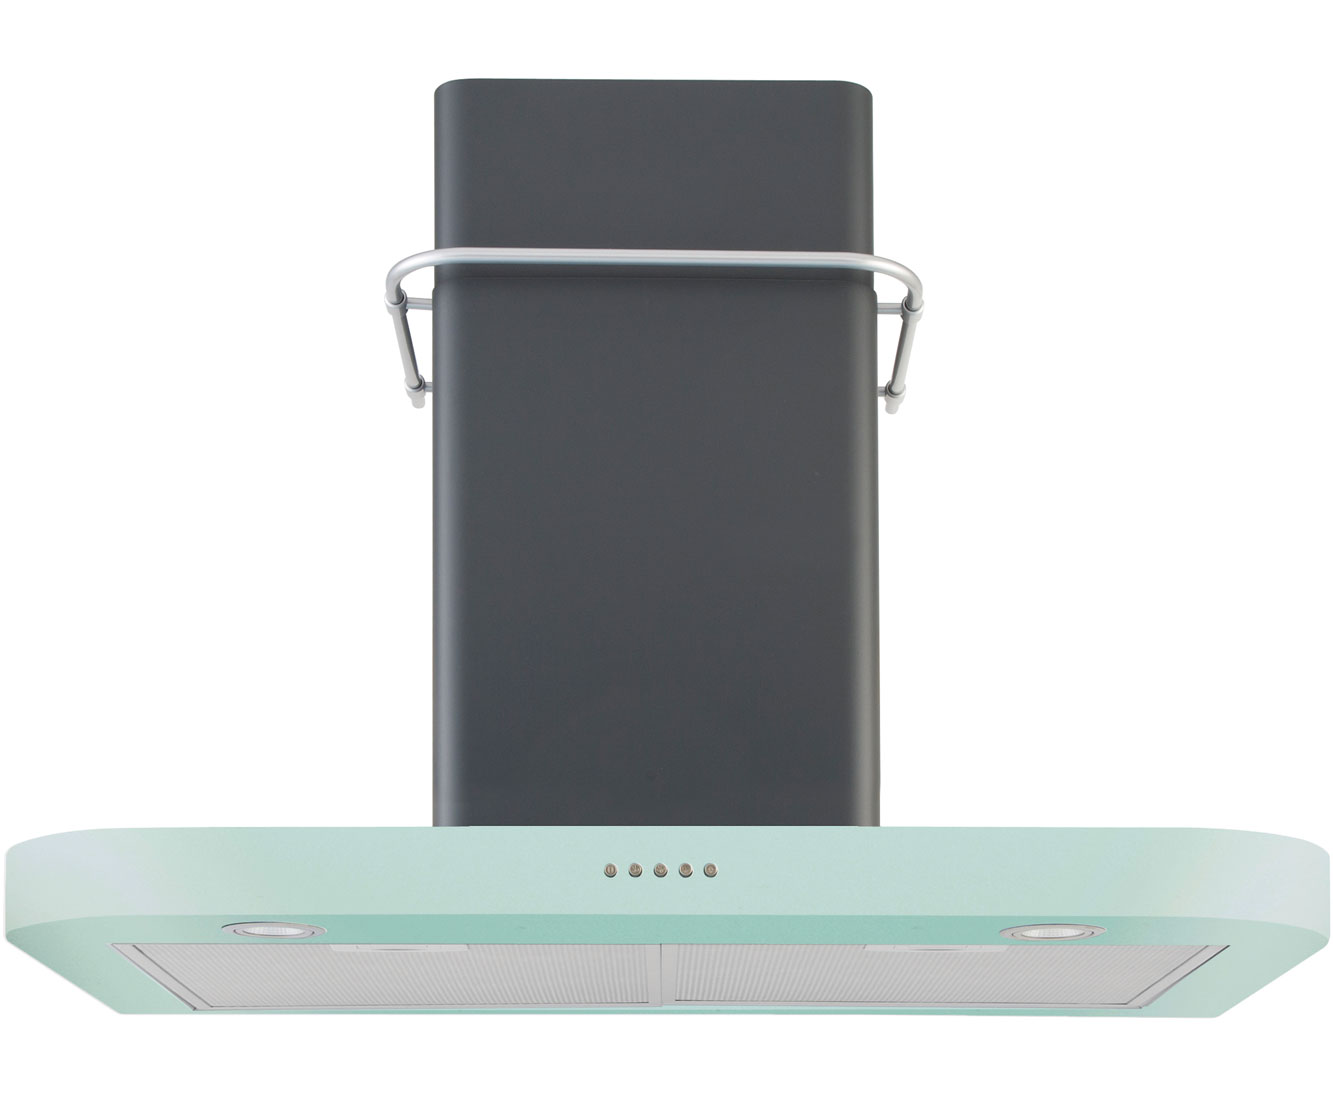 Belling by Sebastian Conran SCCHIM60 Integrated Cooker Hood in Pastel Green